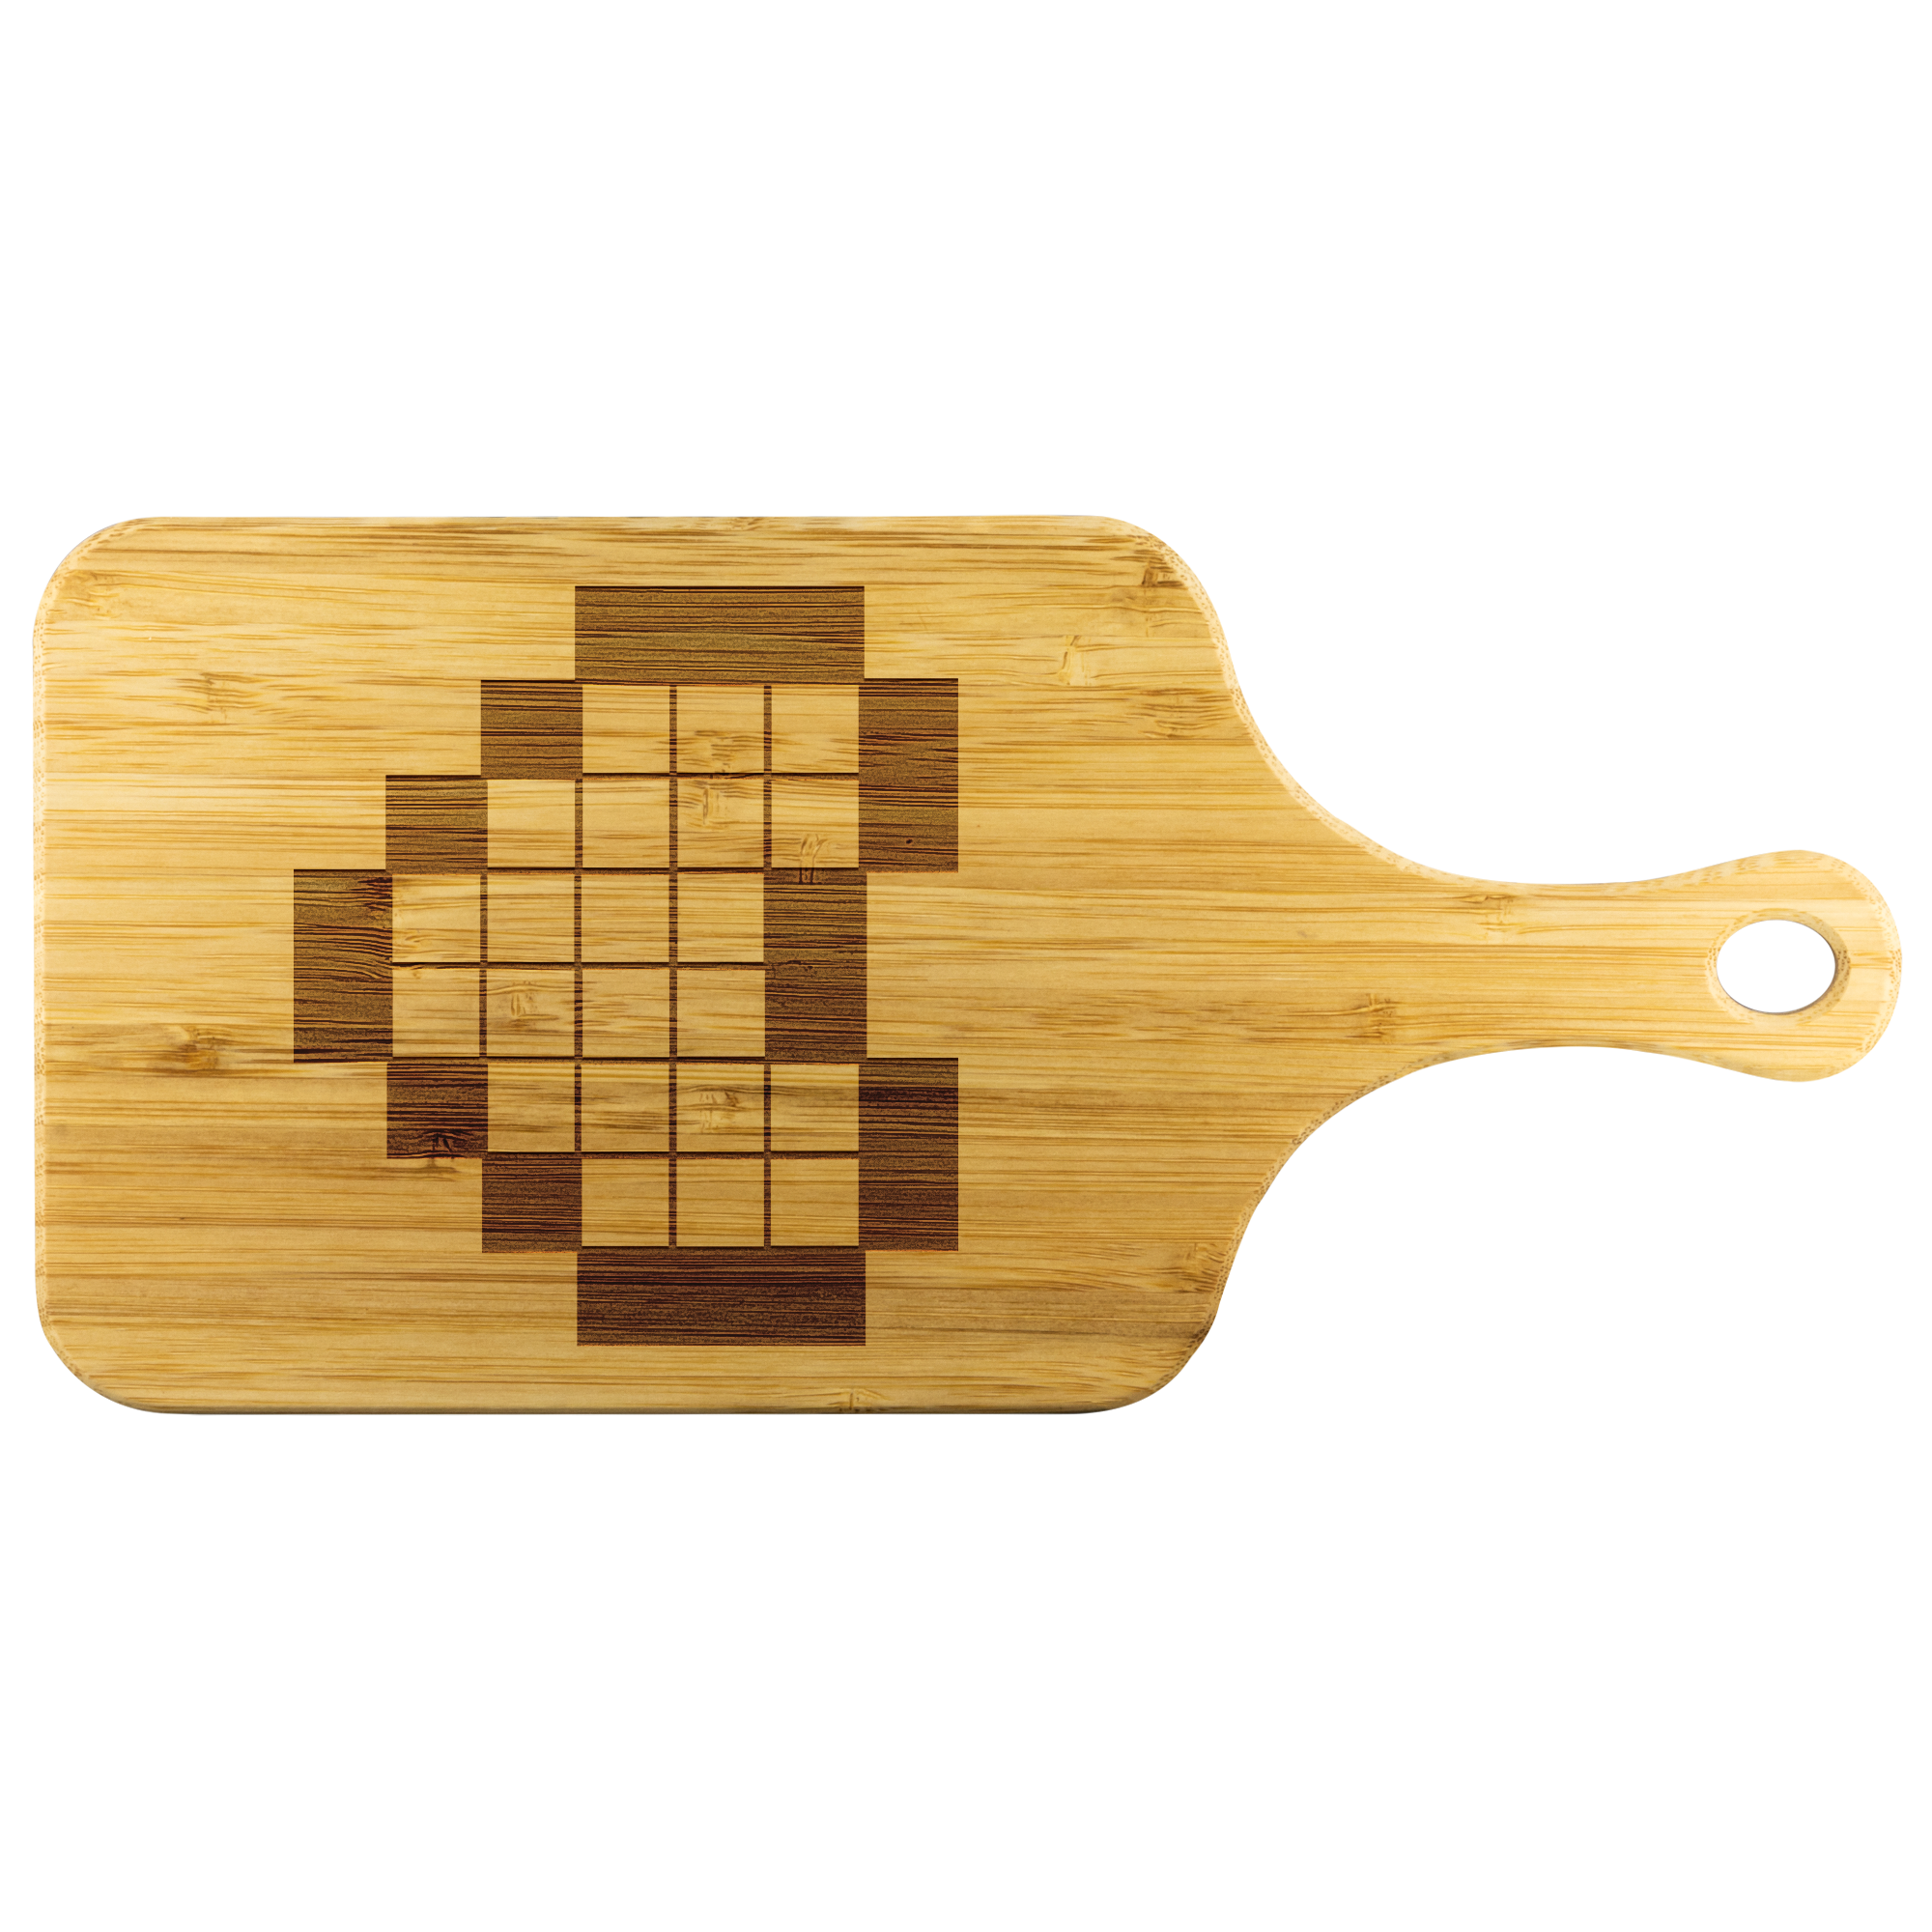 8-bit Pixelated Heart Laser Etched Bamboo Cutting Board with Handle